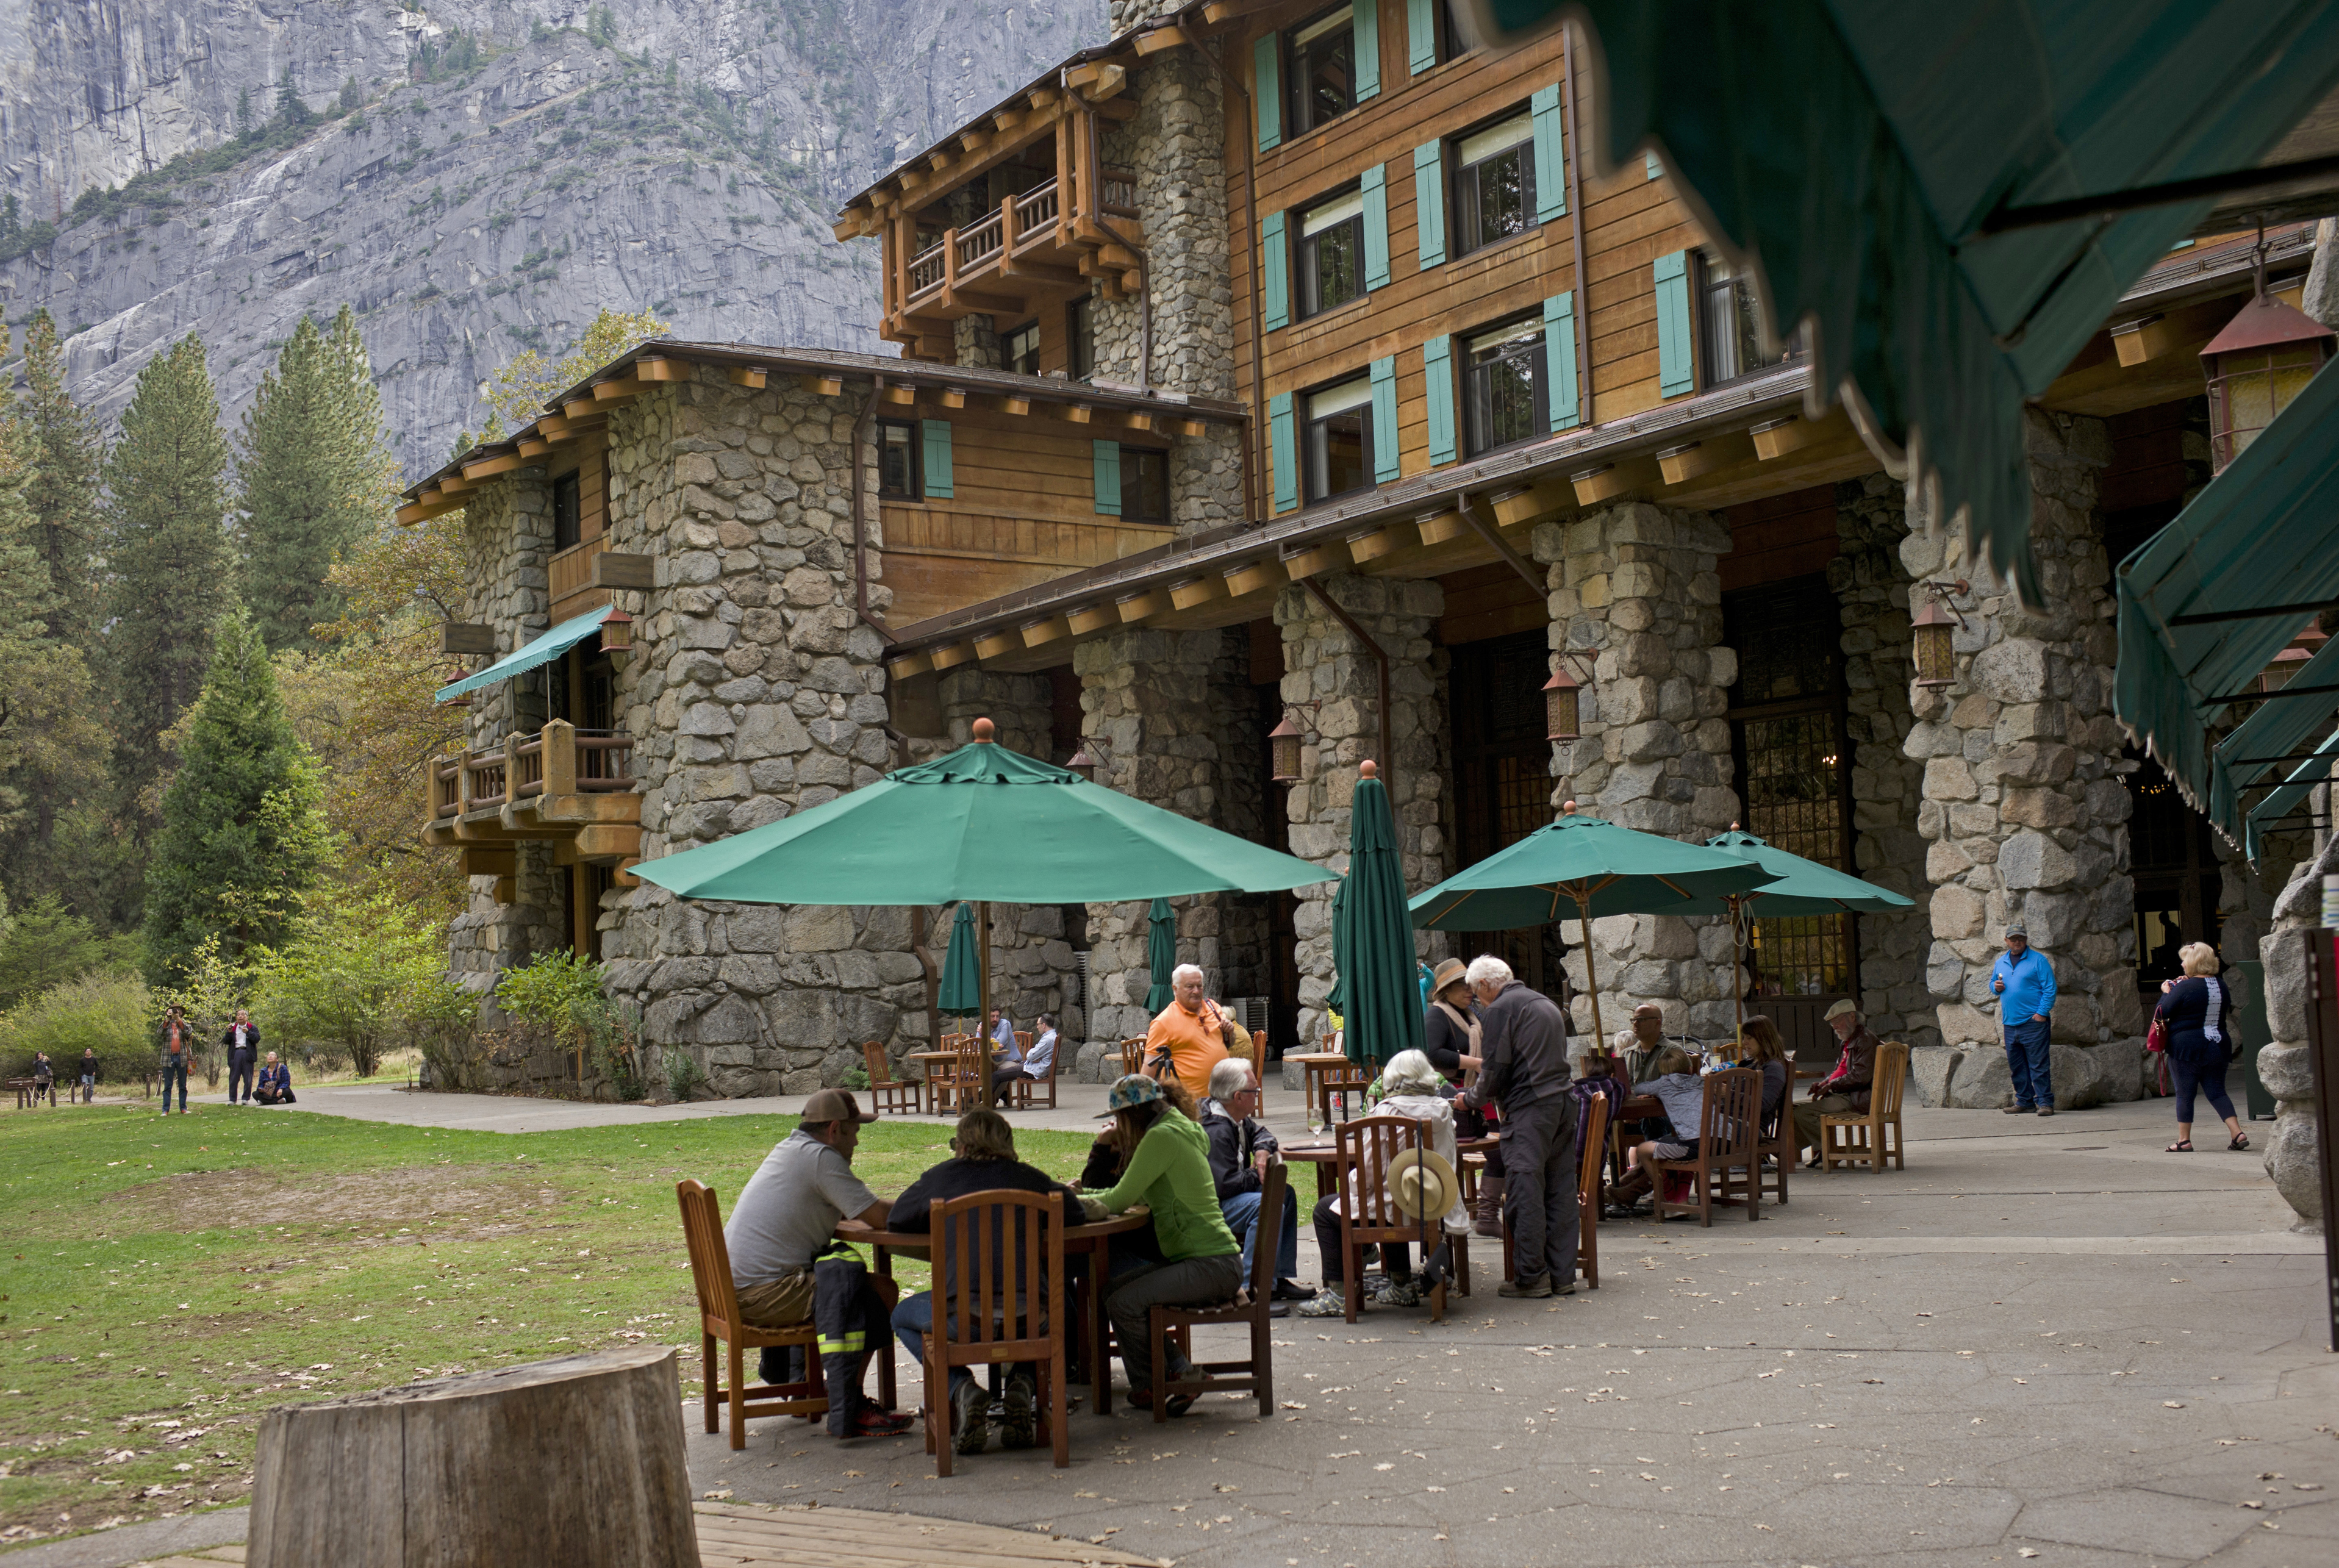 Stomach illness outbreak at Yosemite prompts major clean-up